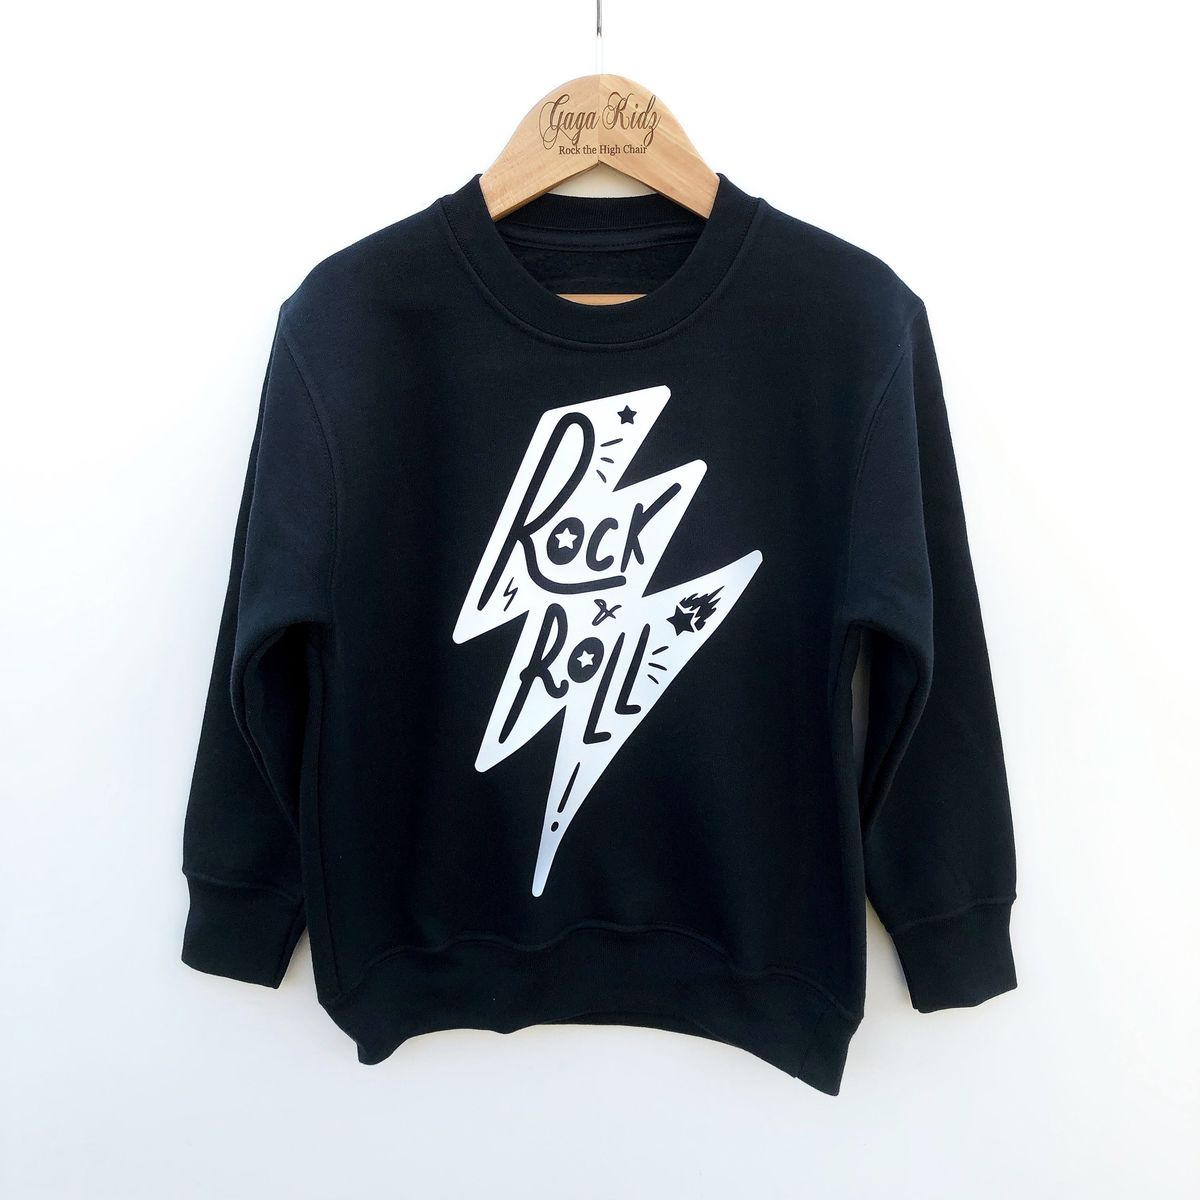 'Rock & Roll Lightning Bolt' Kids Sweatshirt (various sizes) - product images  of